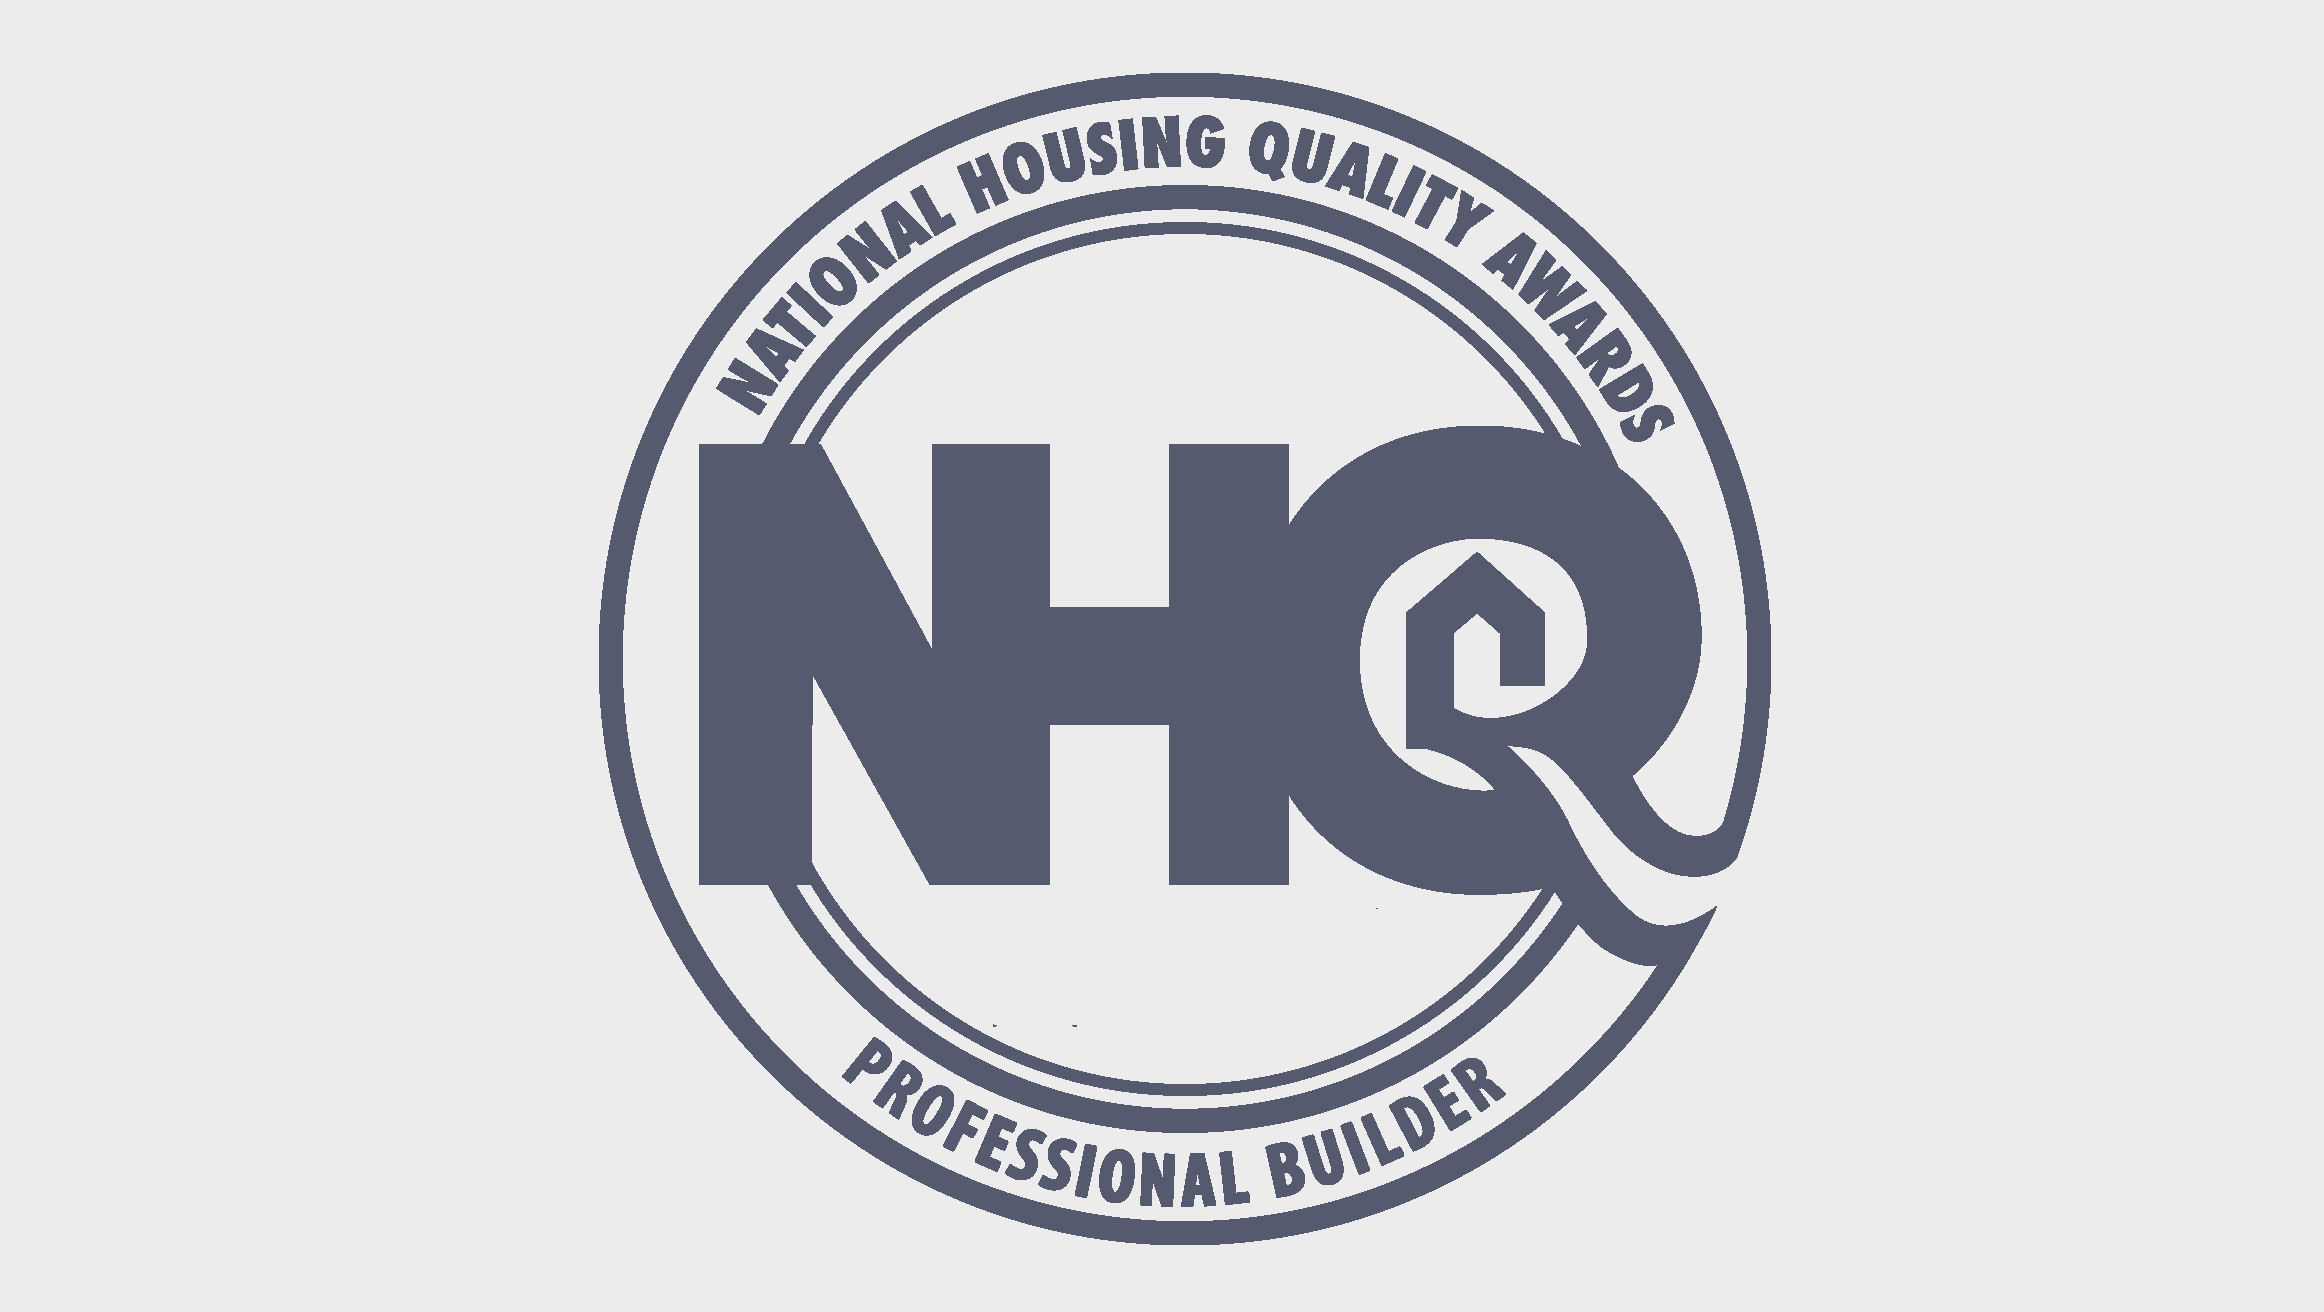 National Housing Quality Awards logo